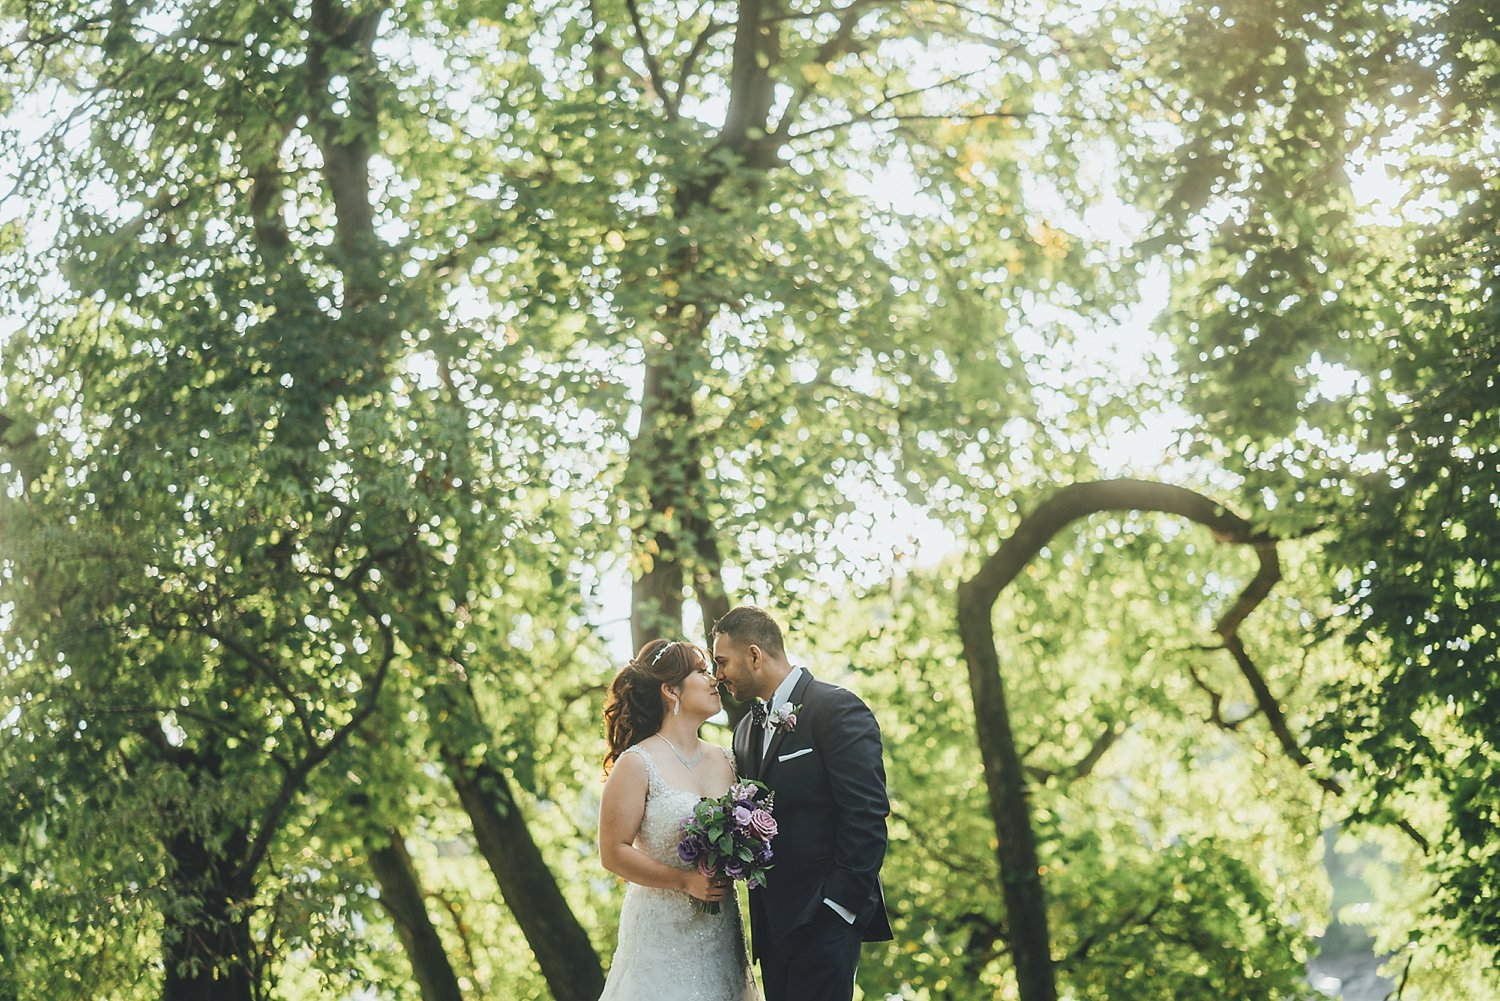 nyc-wedding-photography-nj-tri-state-cinematography-intothestory-by-moo-jae_0263.jpg